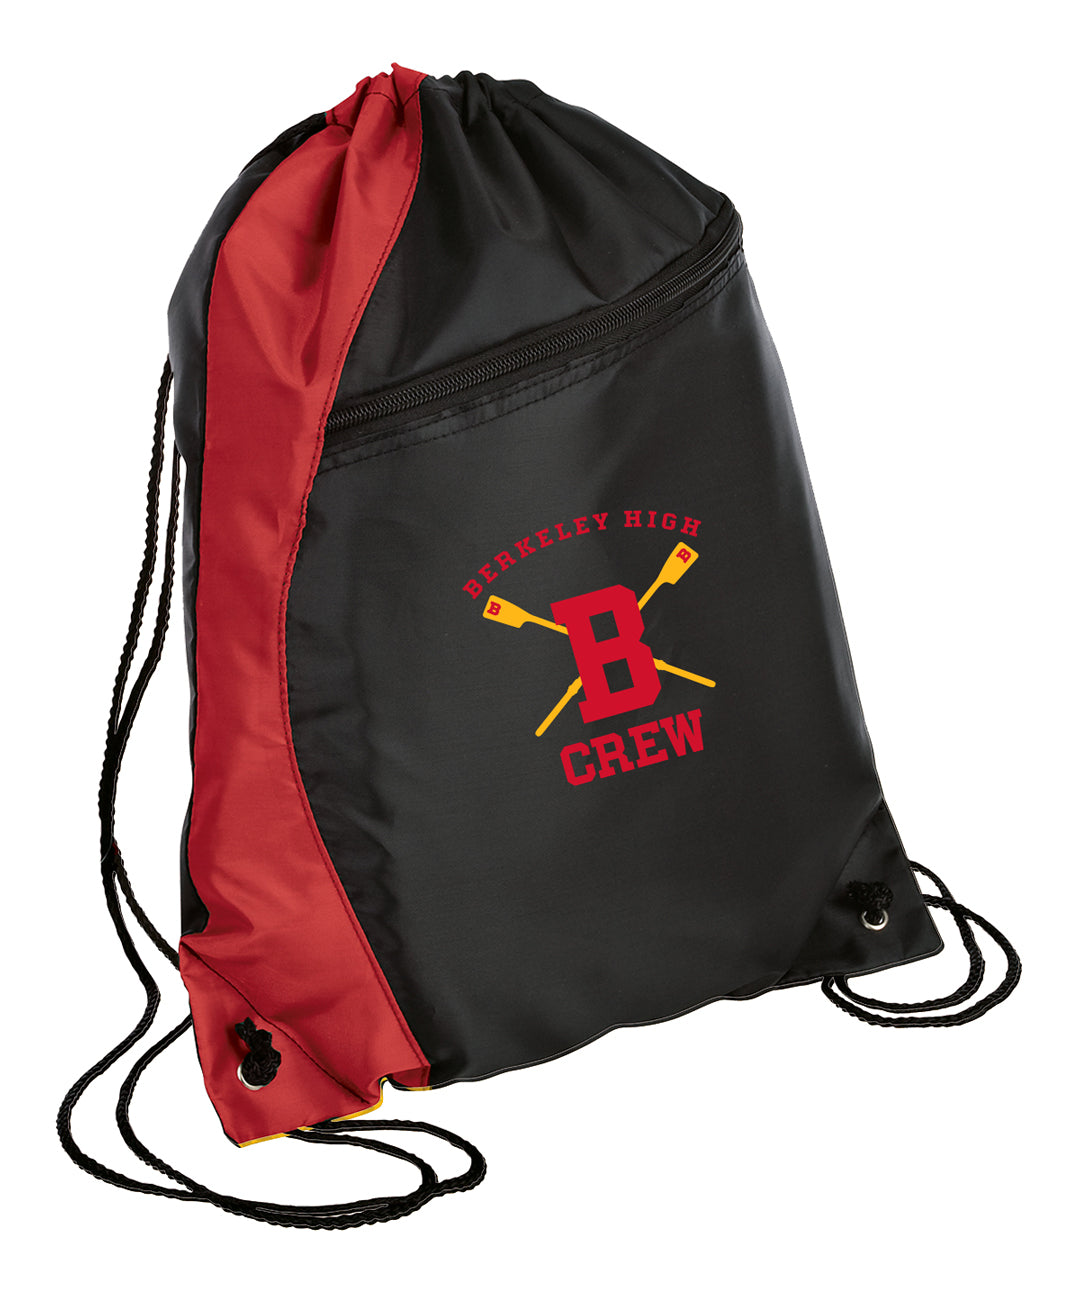 Berkeley High Crew Slouch Packs